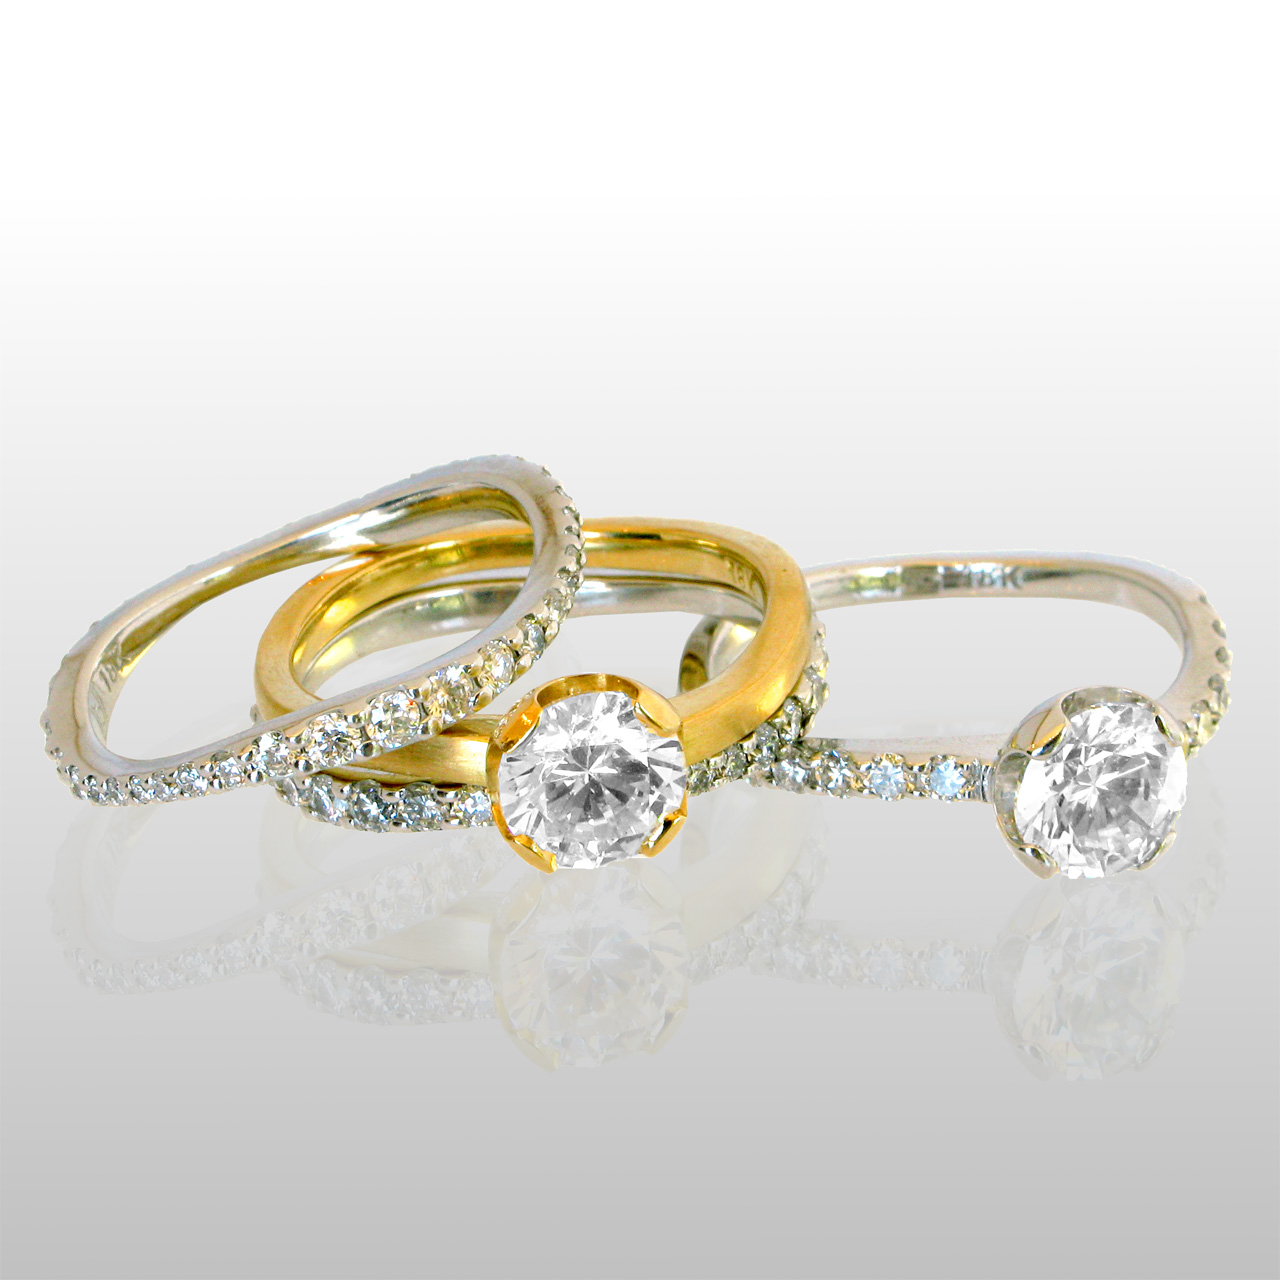 Four wedding rings, two solitaire diamond rings and 2 band rings with diamonds all around. Made of 18k gold